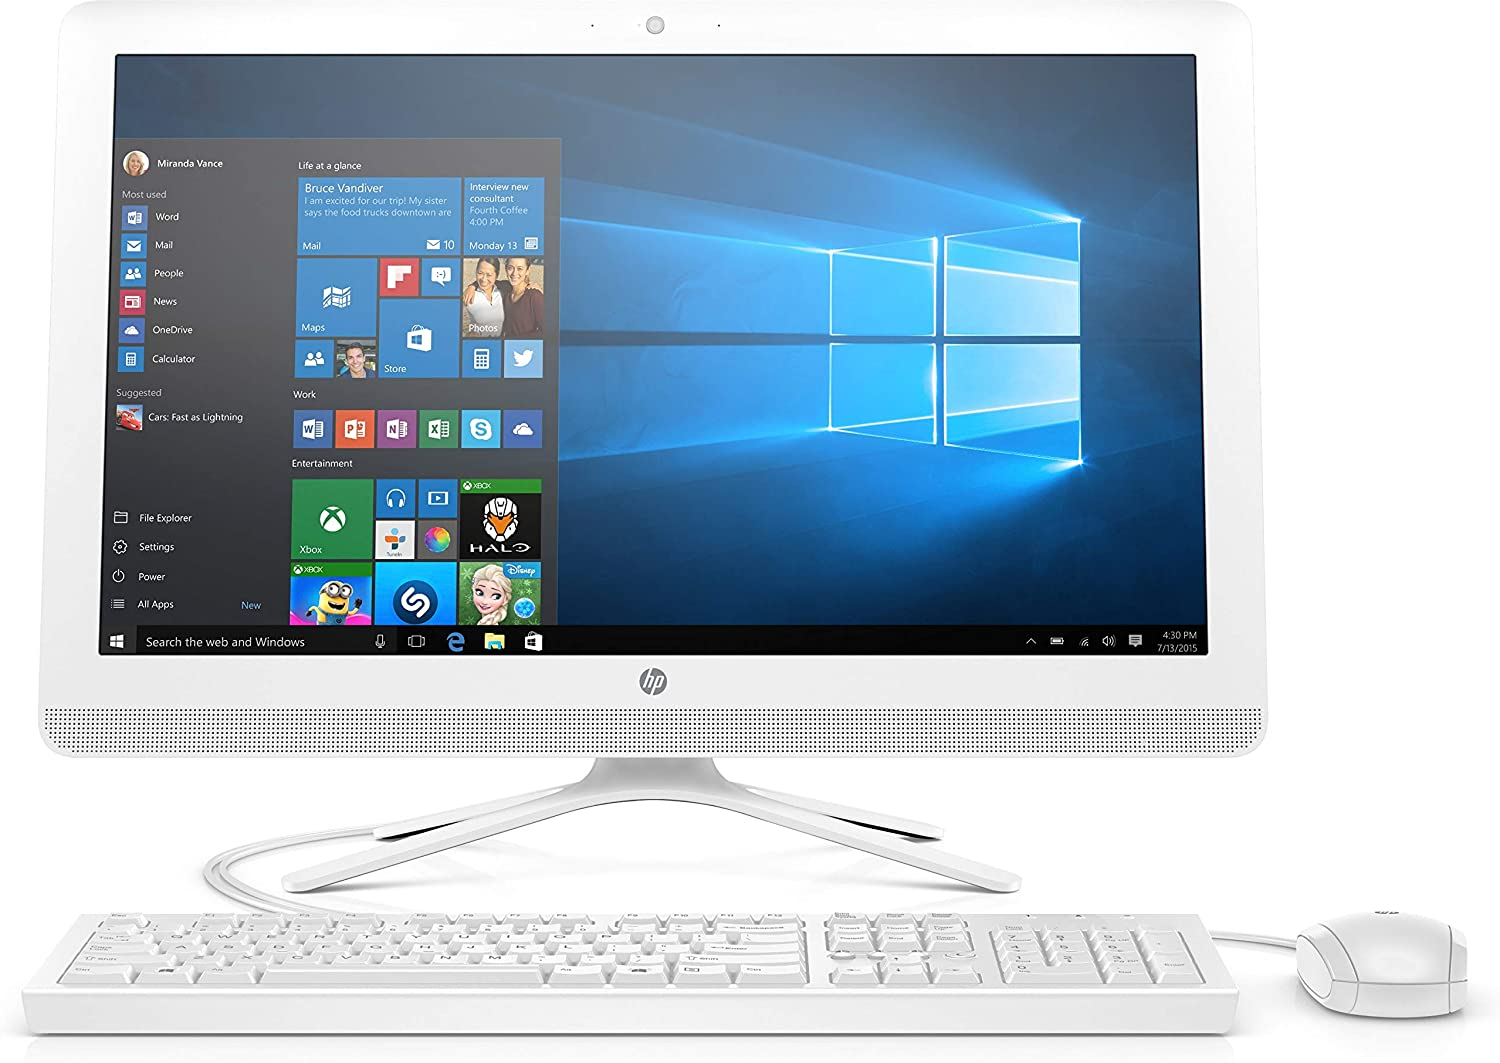 "2017 Newest Edition HP 23.8"" Full HD(1920x1080) Premium High Performance TouchScreen All in One Desktop, Intel Quad Core AMD A8, 4GB RAM, 1TB HDD, Win10, White"